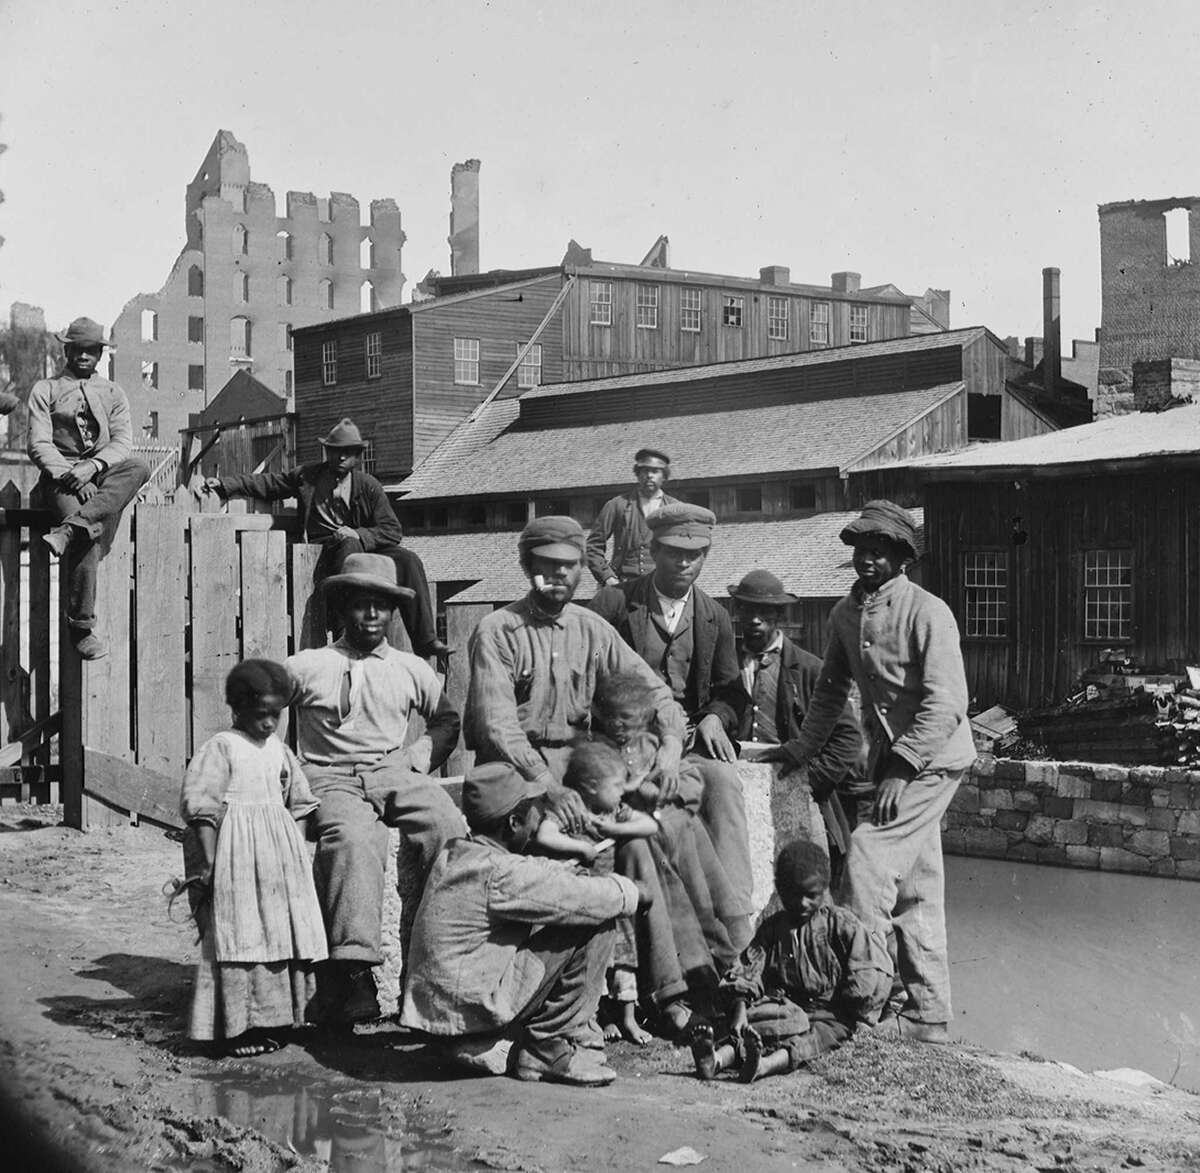 Freed slaves in Richmond, Va., pose during the Civil War in 1865. In the institution of slavery, Black lives didn't matter, but Black bodies were valued. They created profits when sold, and the labor extracted from them enriched their owners and the nation.